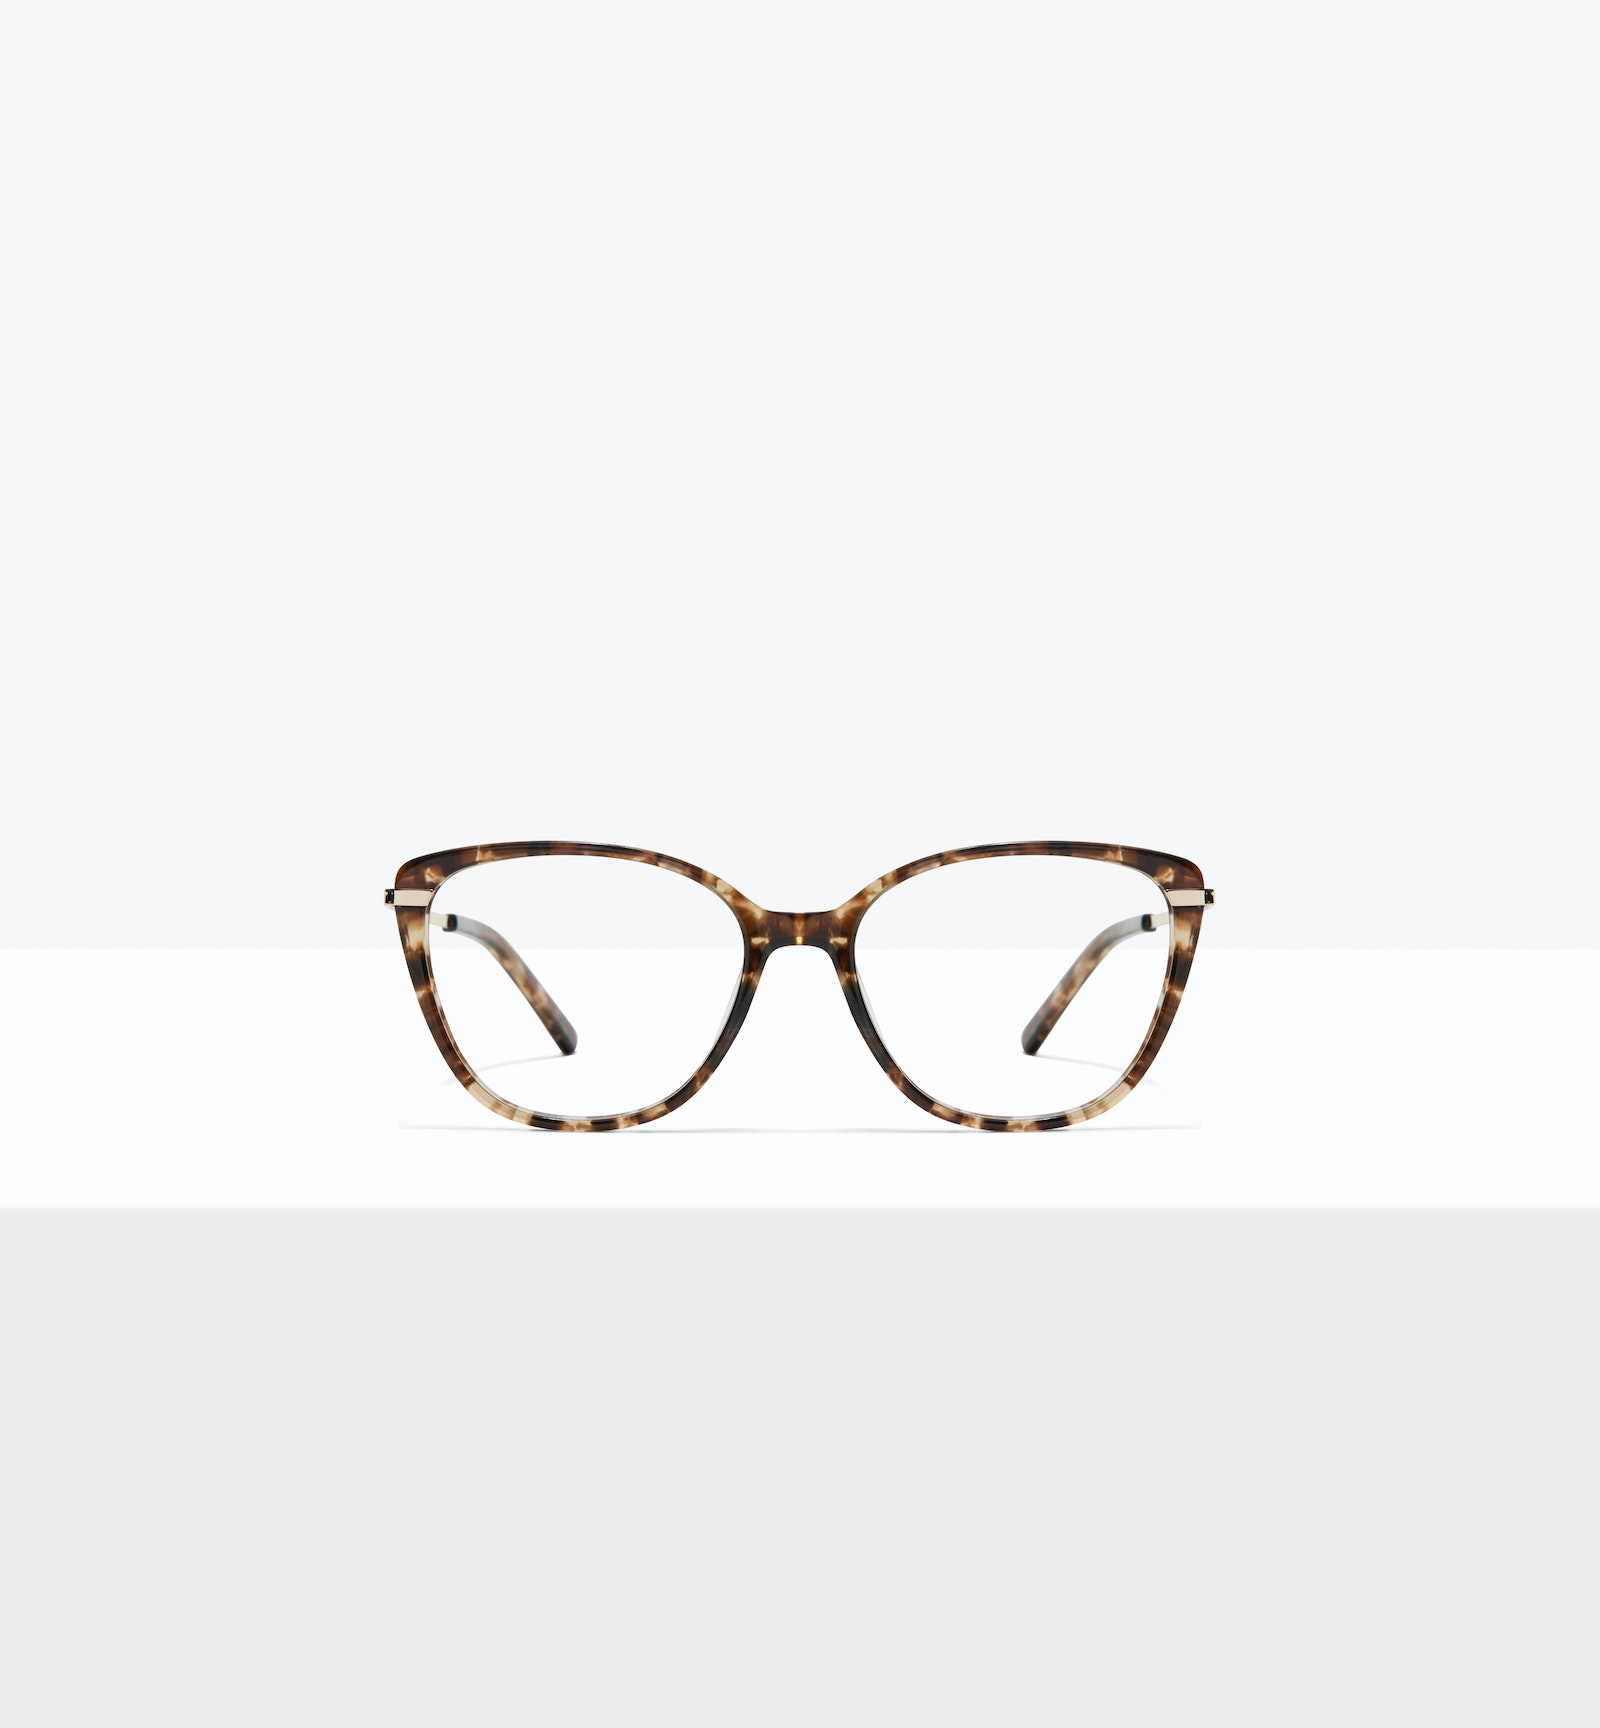 Affordable Fashion Glasses Rectangle Square Eyeglasses Women Illusion L Leopard